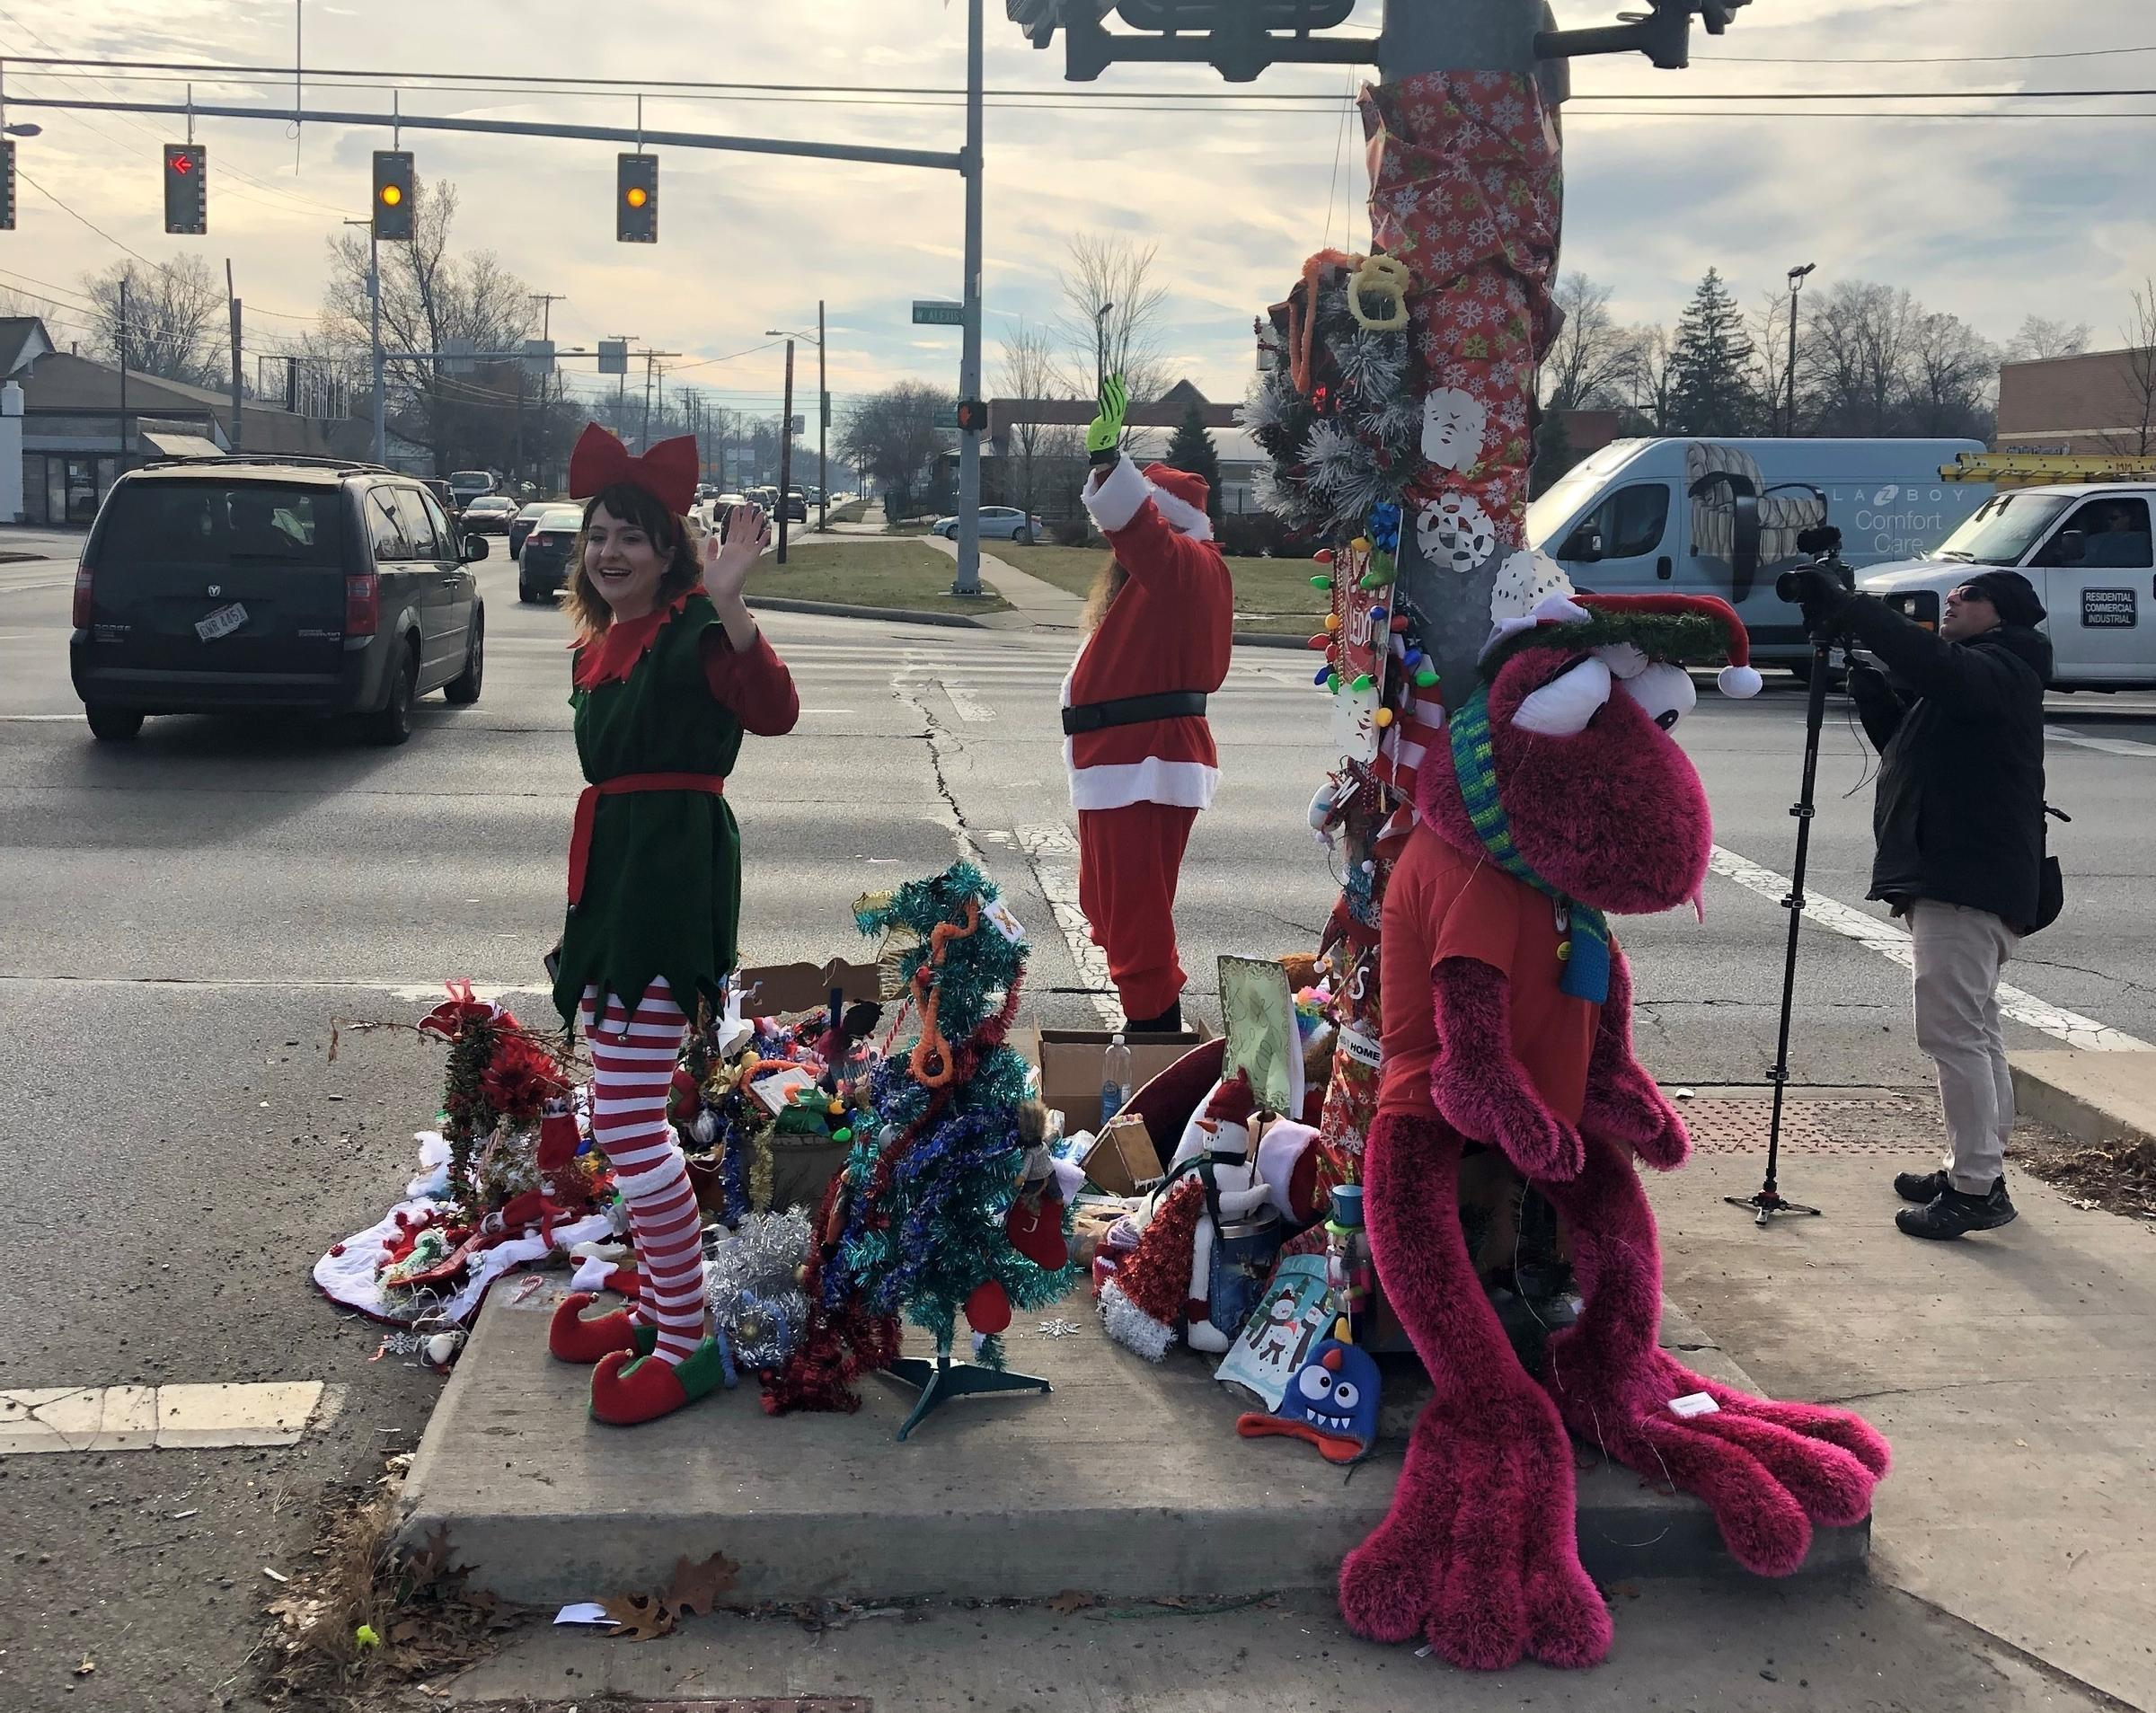 A Weed Grows In Toledo And Residents Hang Their Christmas Hopes